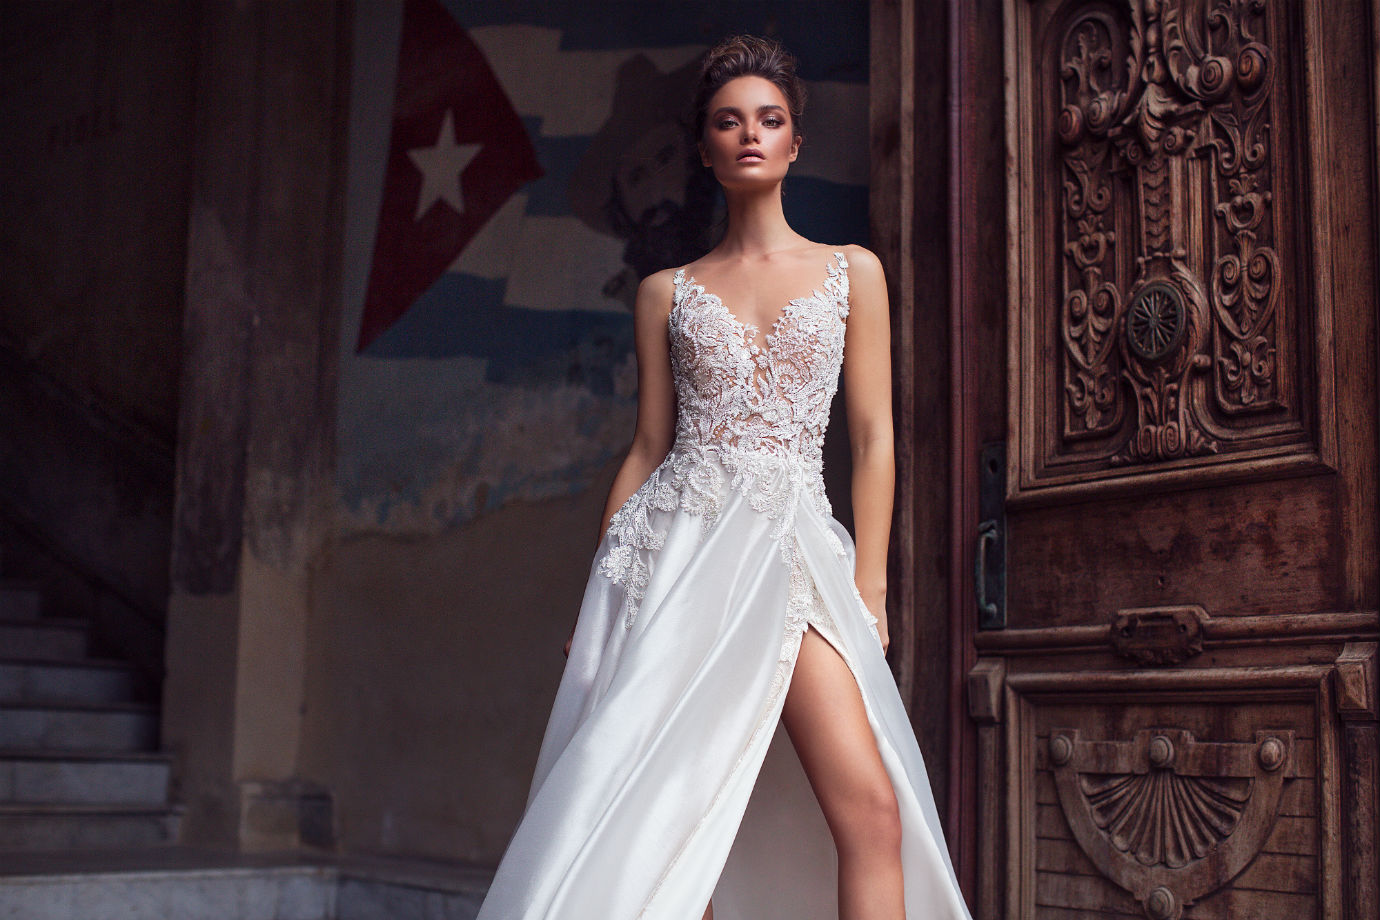 Blushing Bridal Boutique ,MillaNova,lorenzo rossi, Maisy, Havana Campaign, new collection 2018,bridal-wedding-wedding gown-Mississauga-woodbridge-vaughan-toronto-gta-ontario-canada-montreal-buffalo-NYC-california